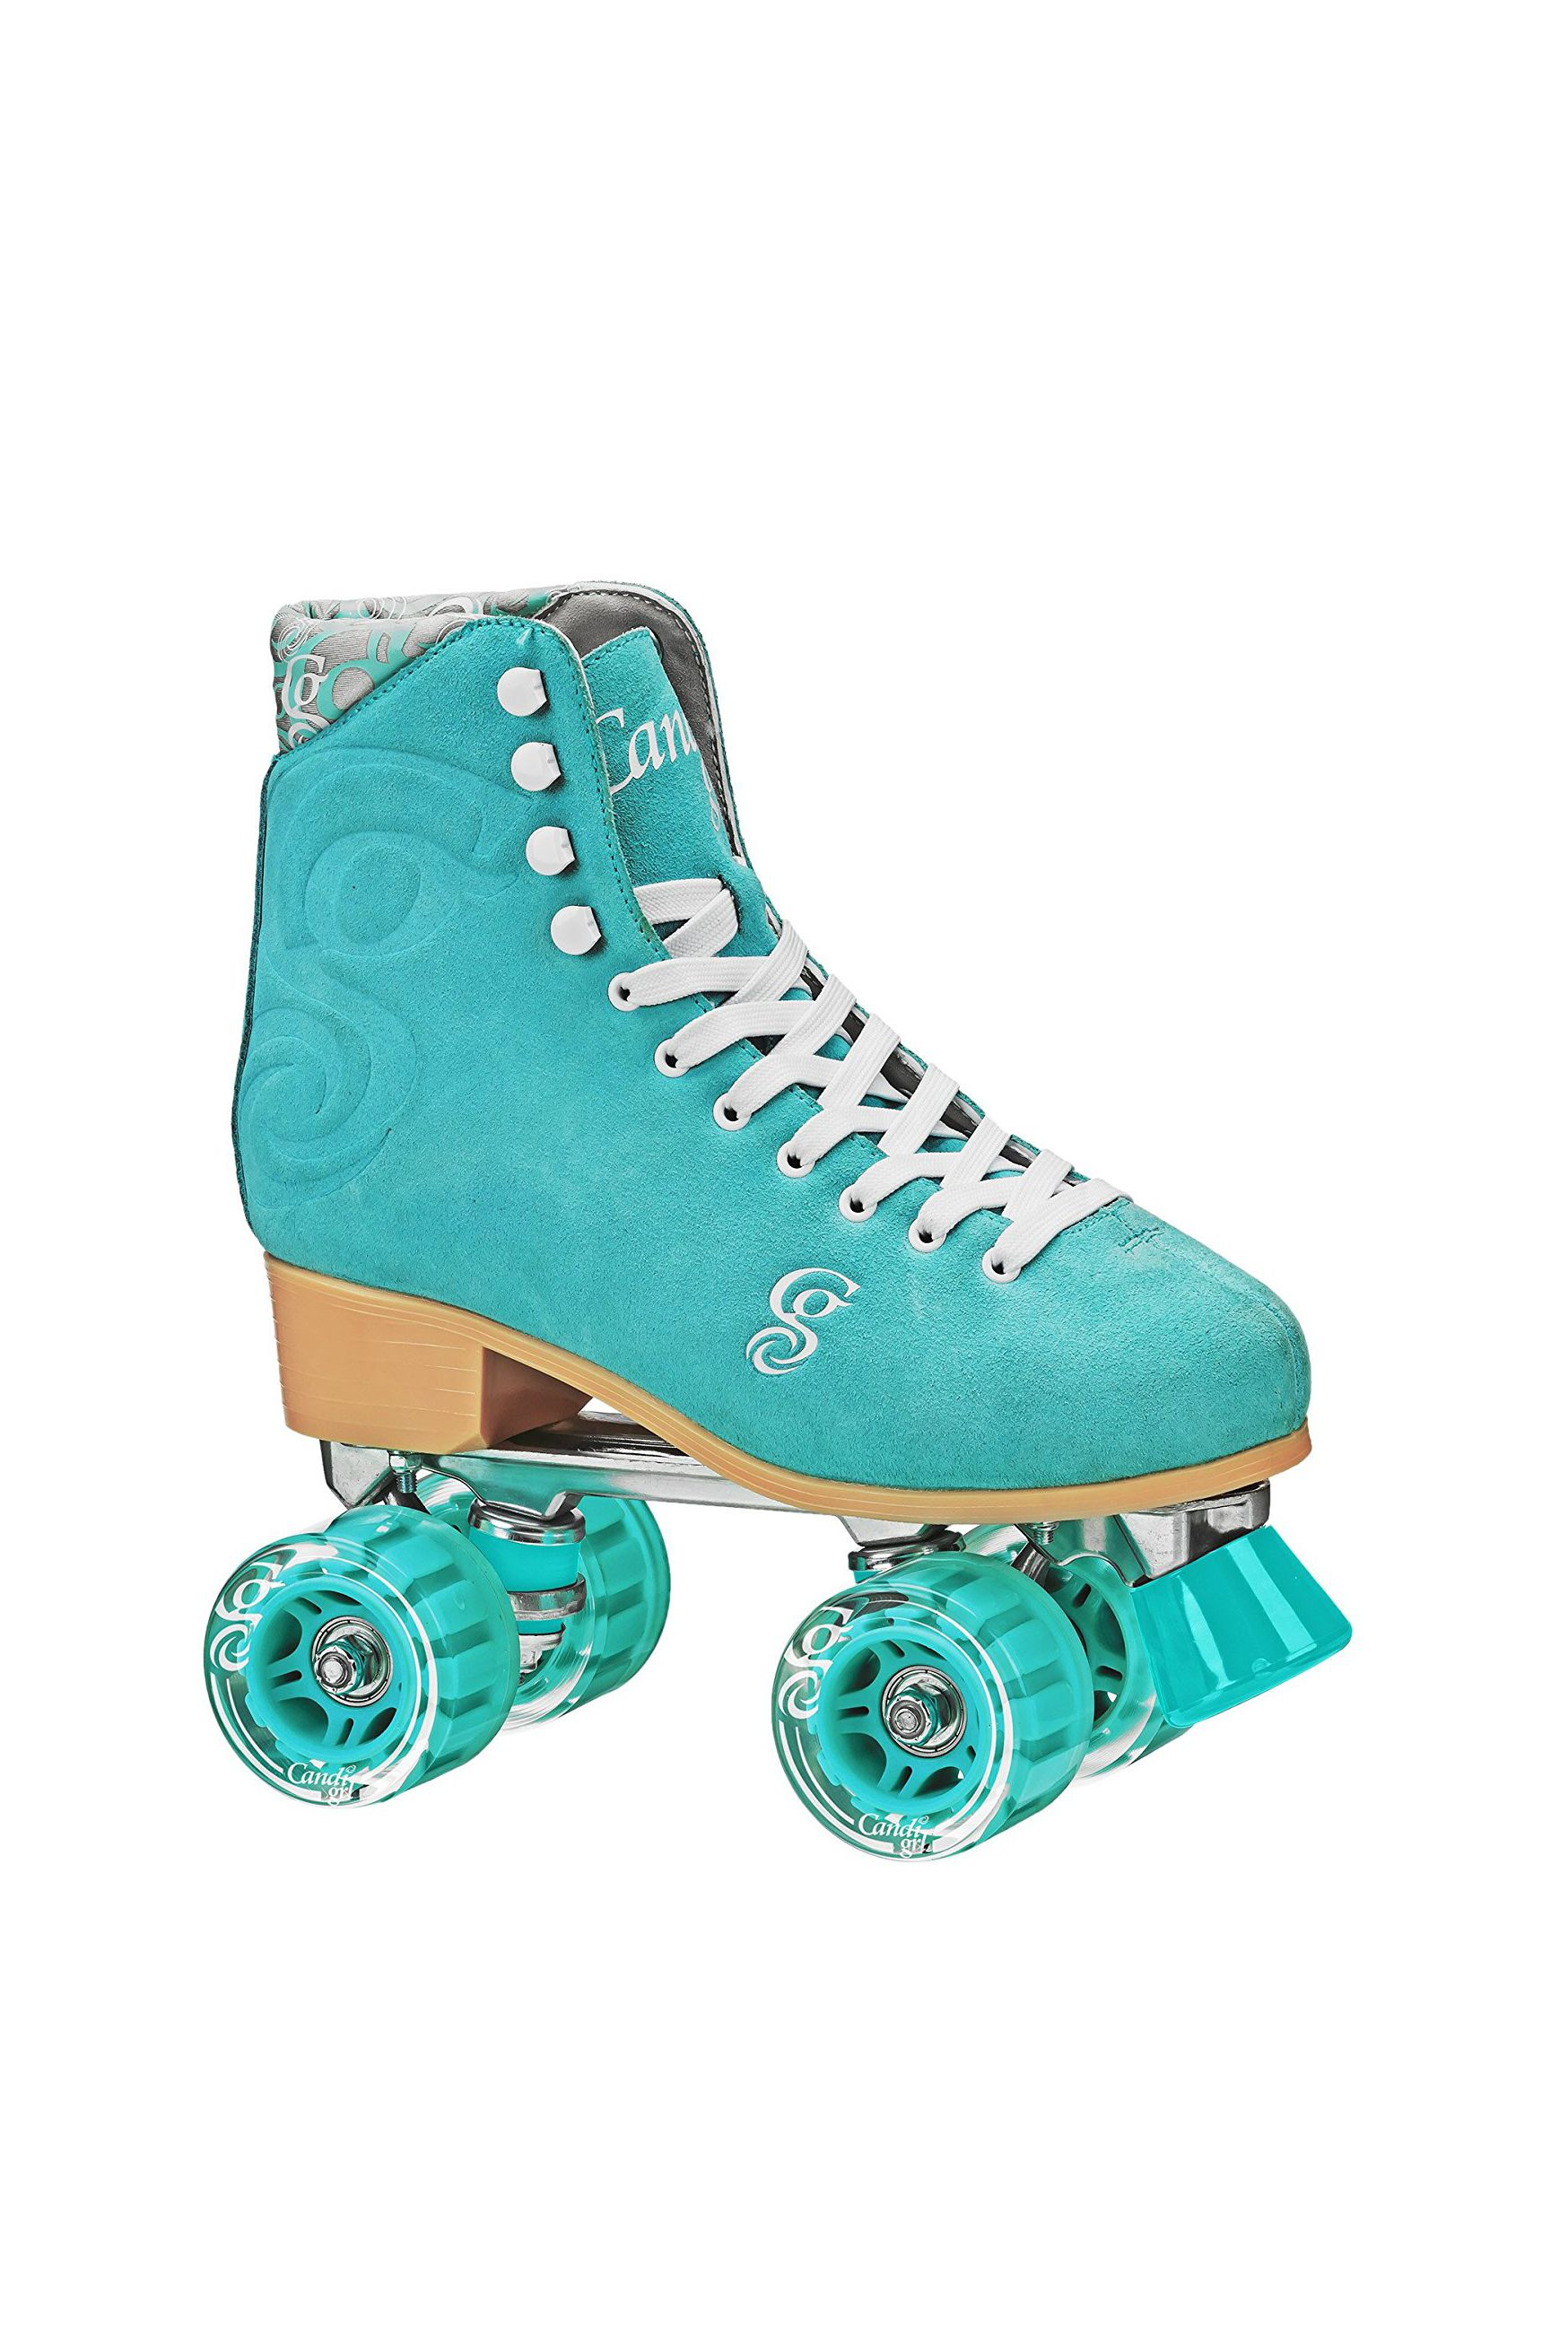 15 Best Gifts for Tween Girls 2018 - Great Gift Ideas for 8, 9, 10 ...